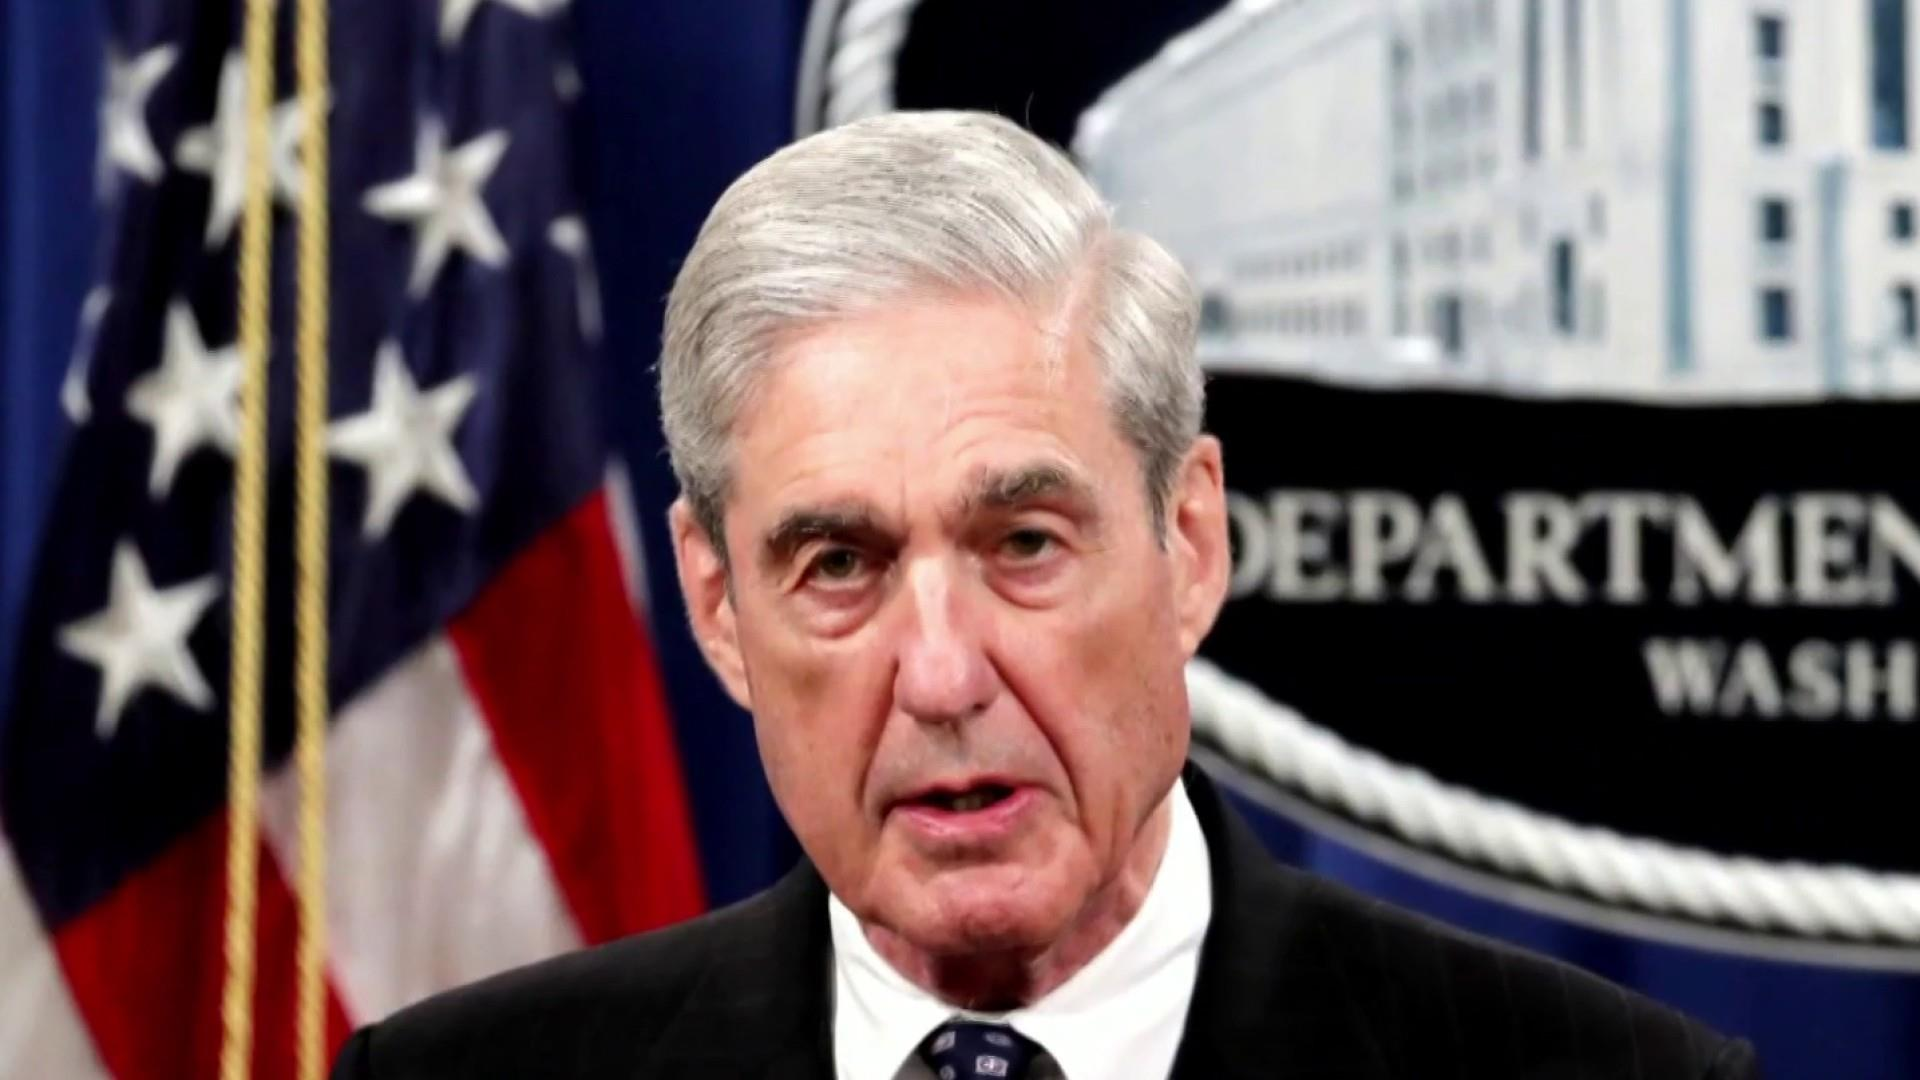 Joe: GOP should tread carefully when questioning Mueller